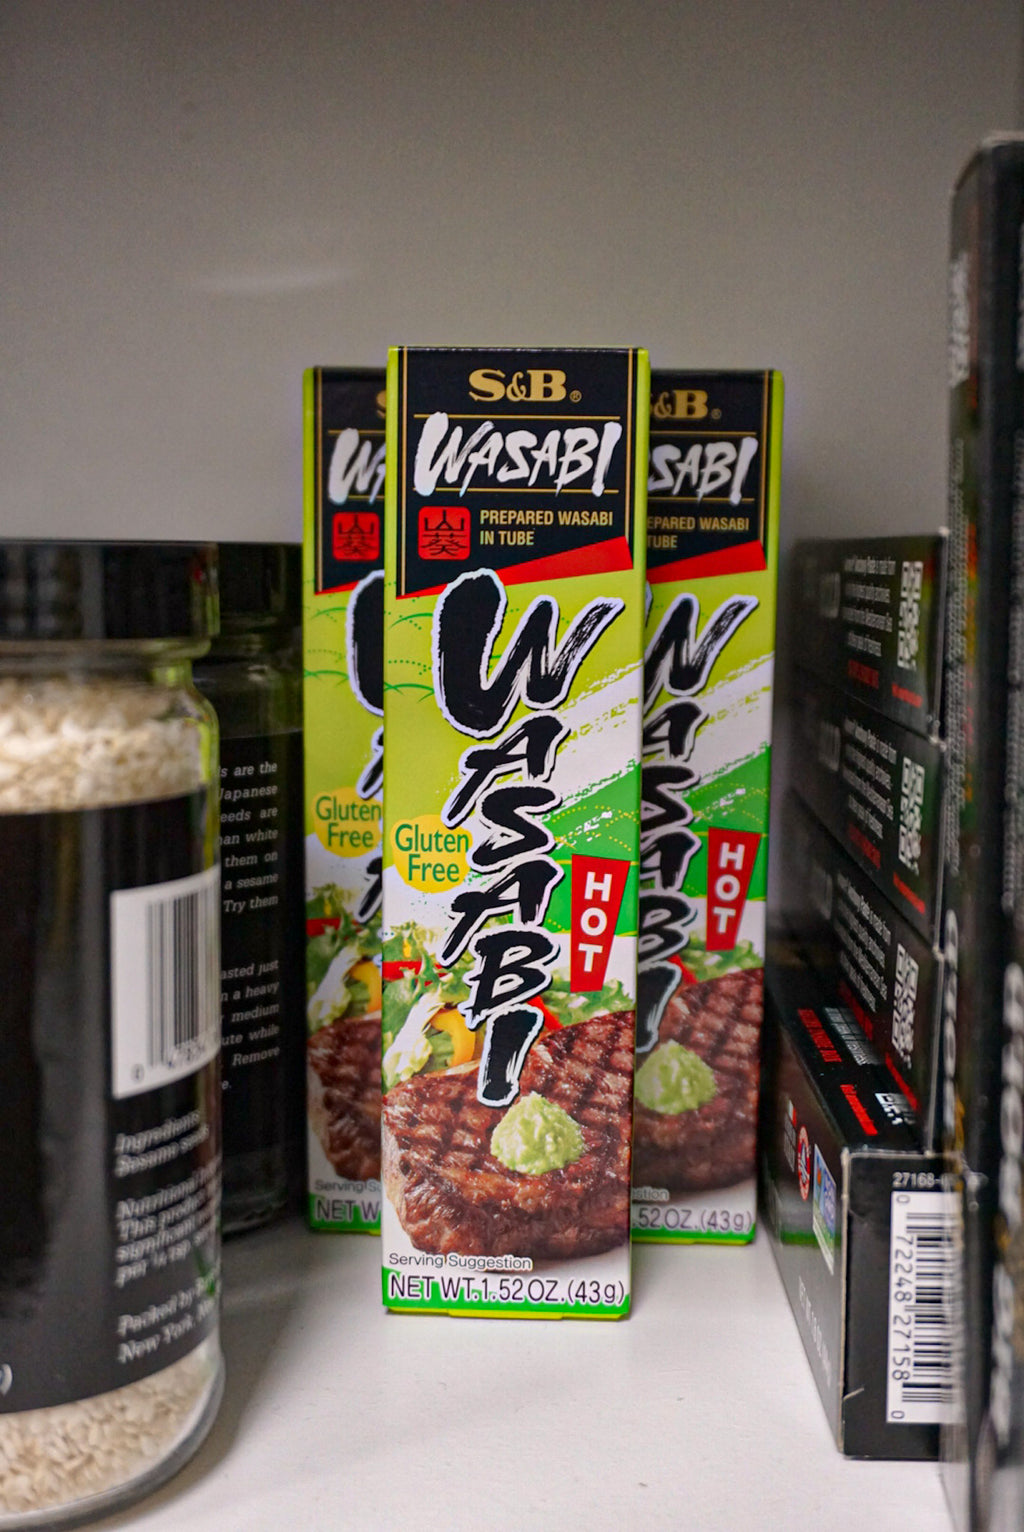 S&B Neri Wasabi Paste 1.52 oz Box